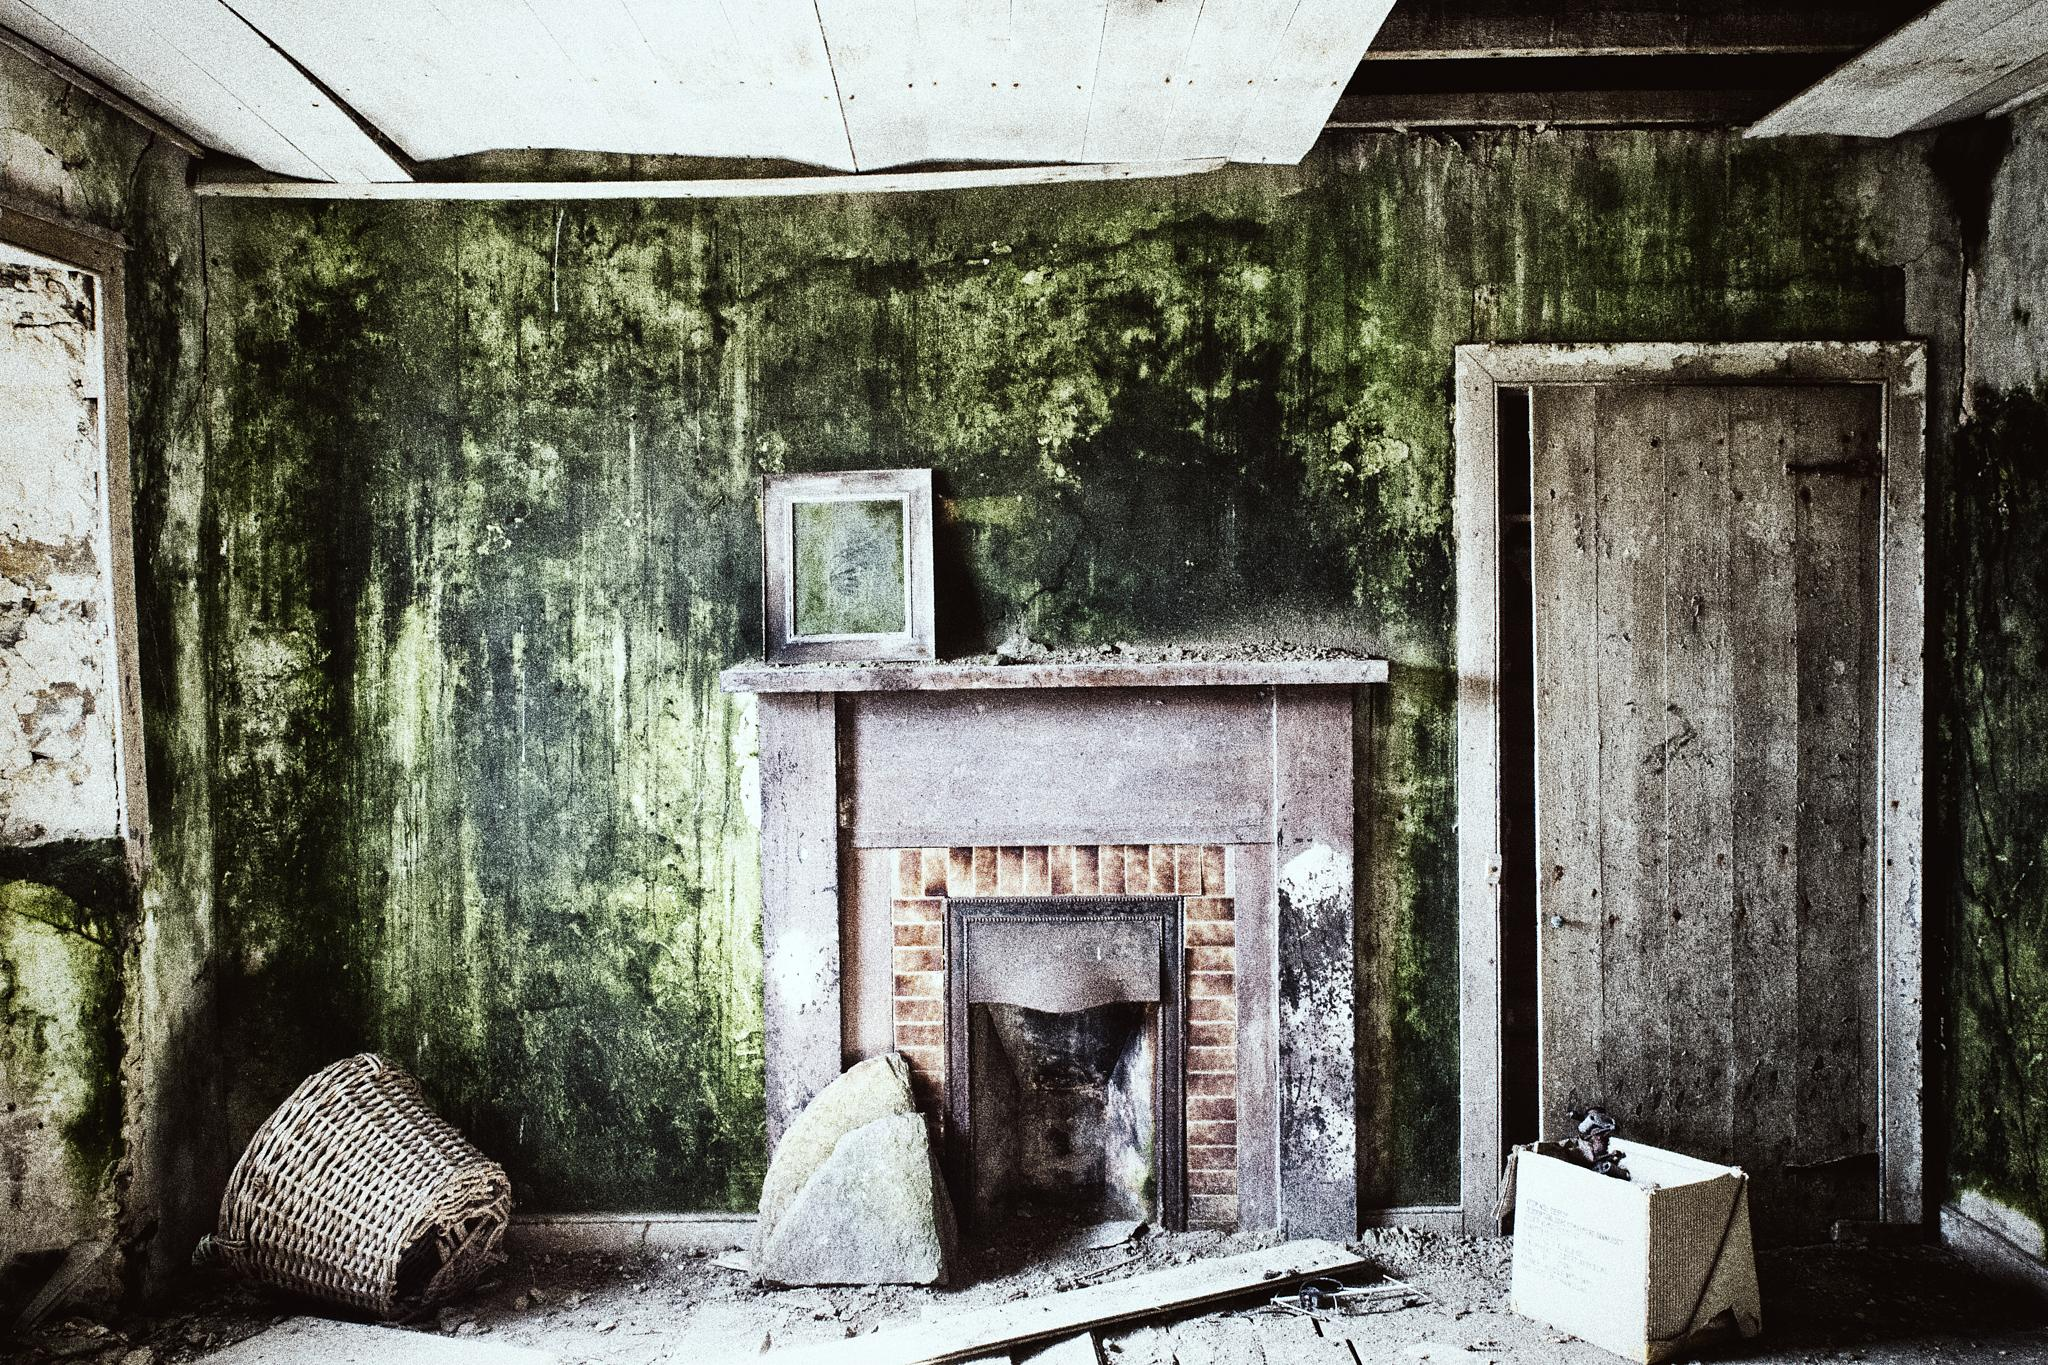 Derelict Cottage, interior by isegarth